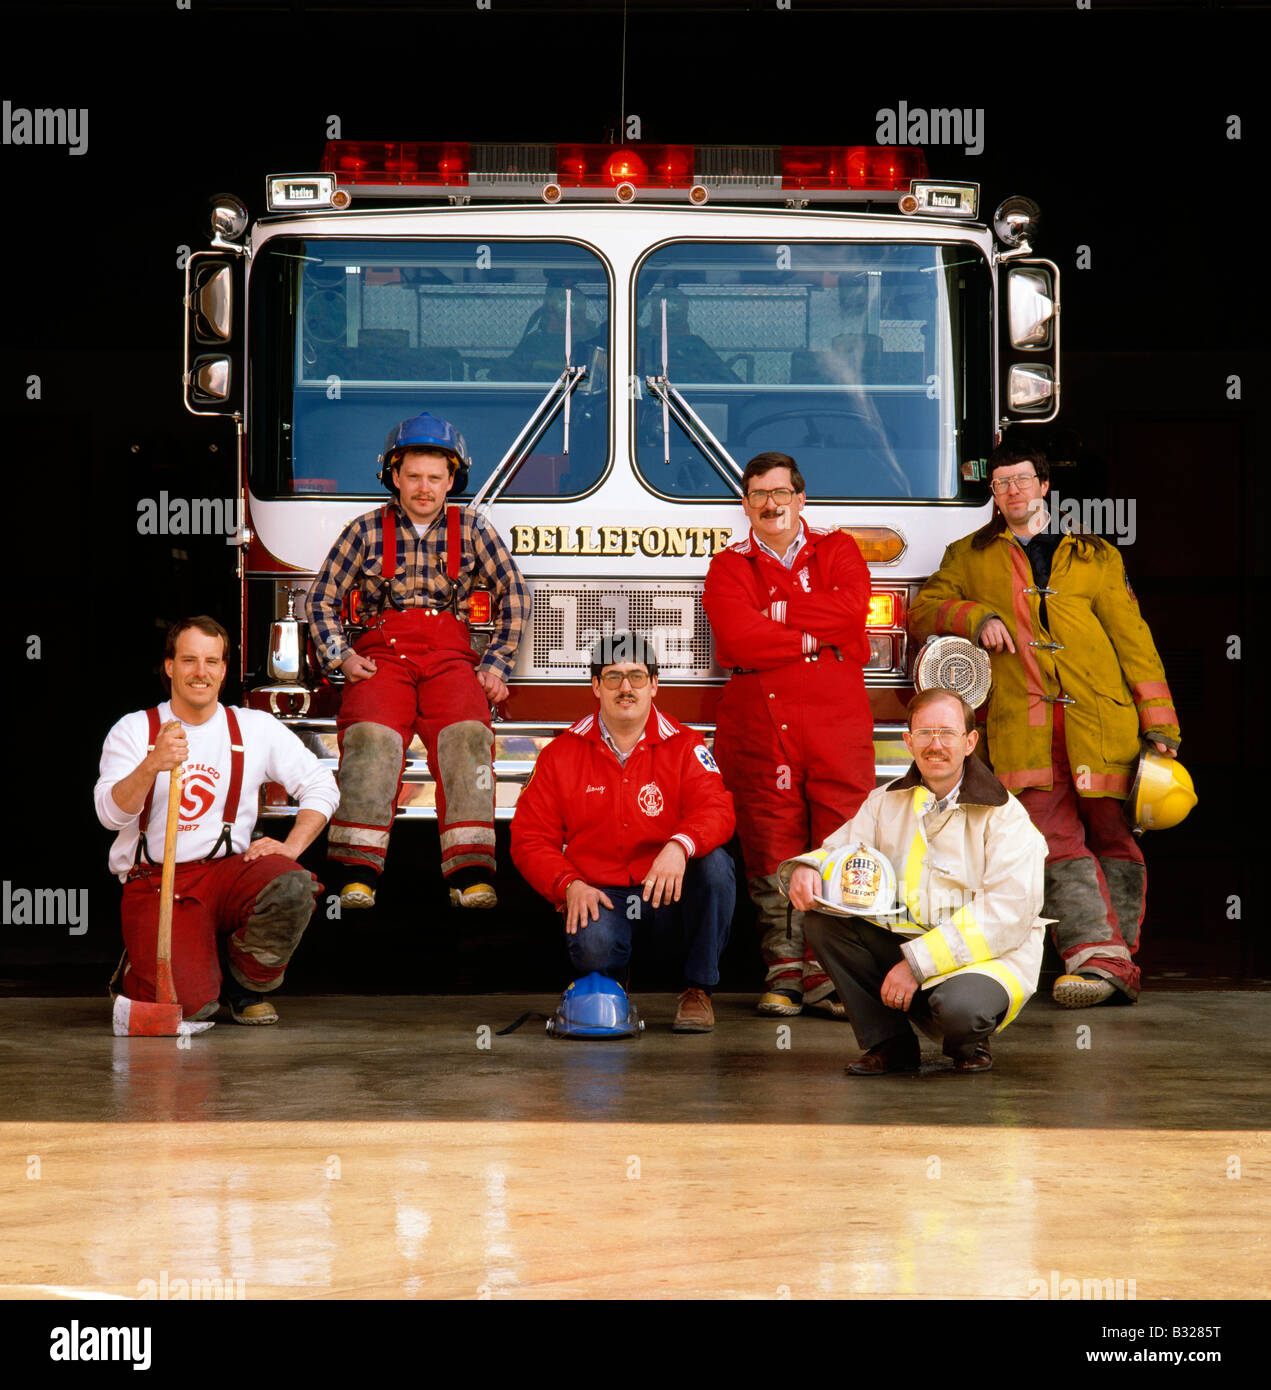 BELLEFONTE, PA, VOLUNTEER FIRE DEPARTMENT MEMBERS POSE IN FRONT OF A FIRE TRUCK - Stock Image